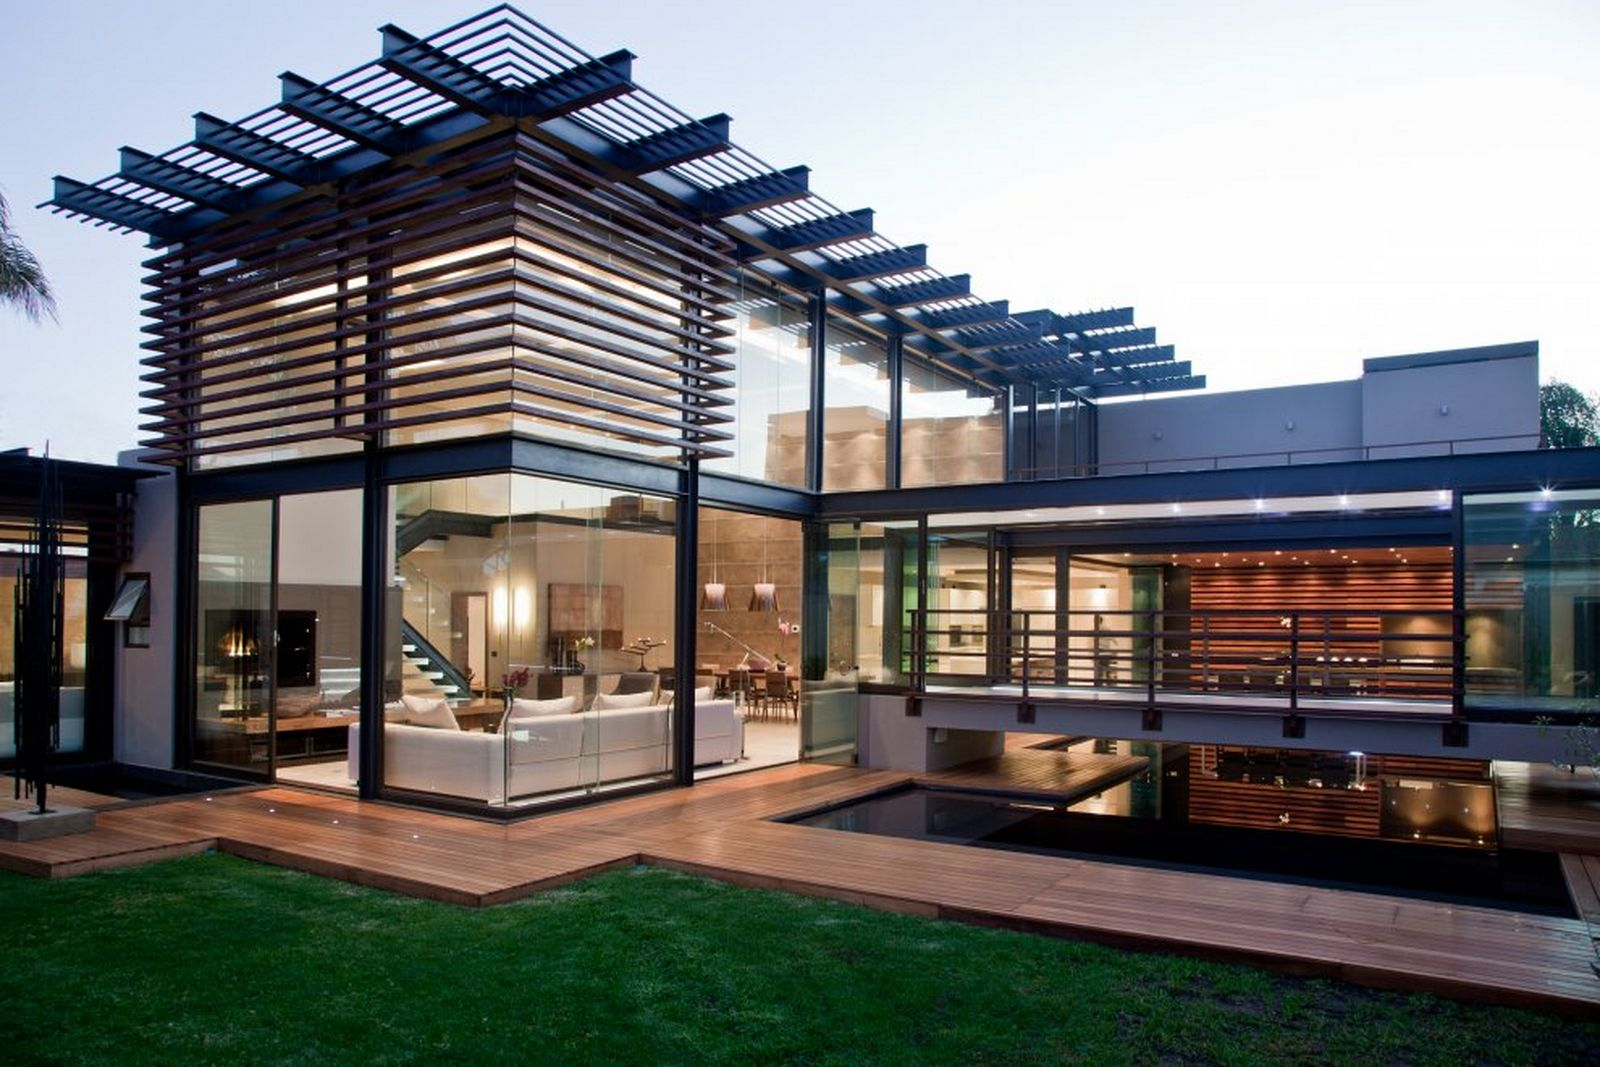 http://residencestyle.com/wp-content/uploads/2014/12/Contemporary-Home-Exterior-Design-Idea-with-Glass-Wall-and-Green-Grass.jpg